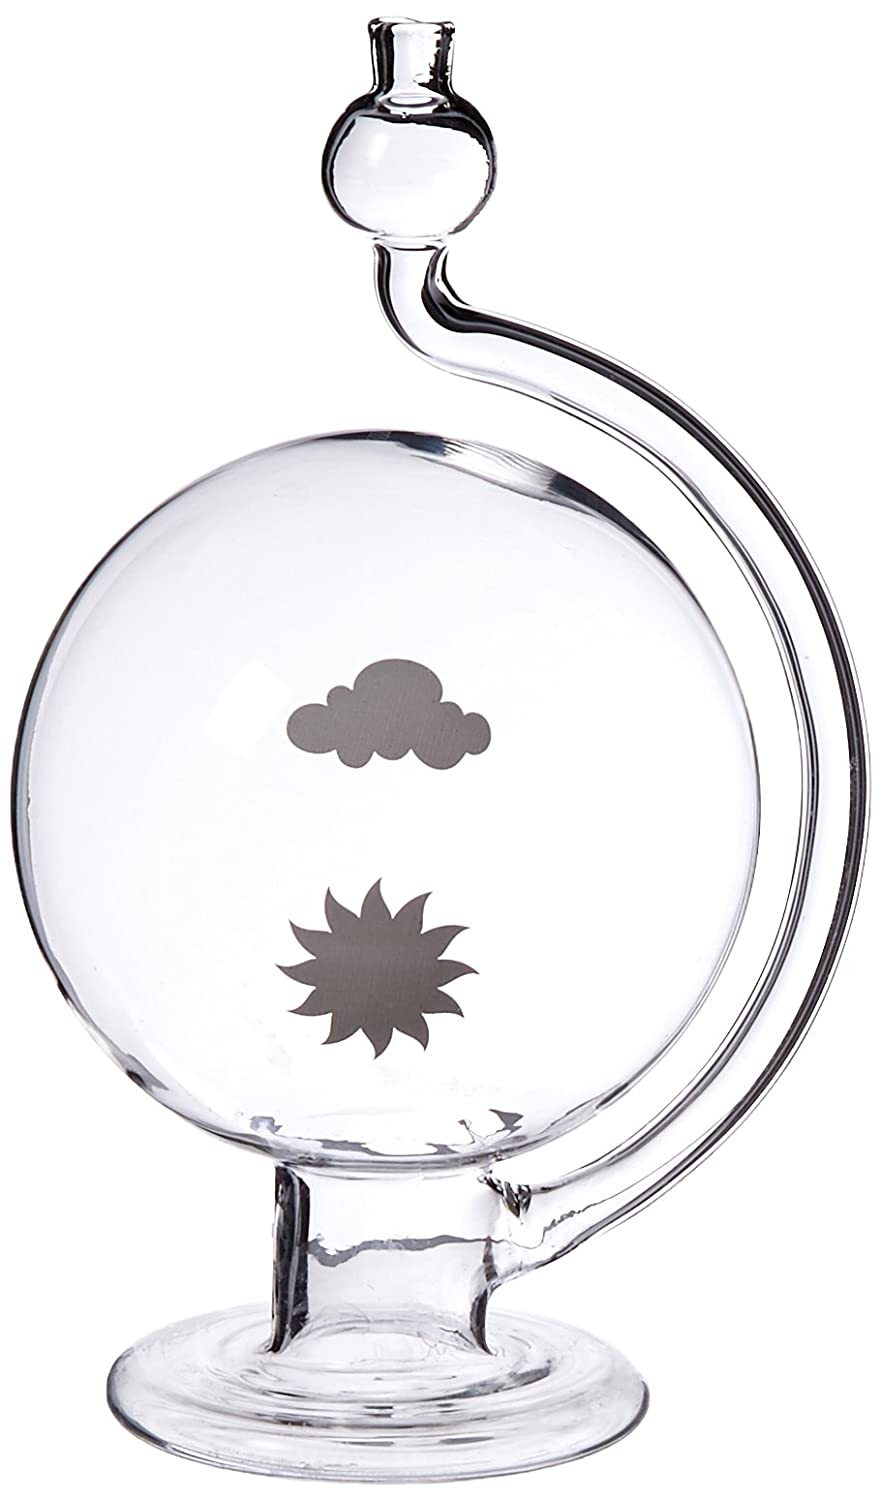 GSC International WG-1 Weather Globe Barometer, Glass Thomas Scientific